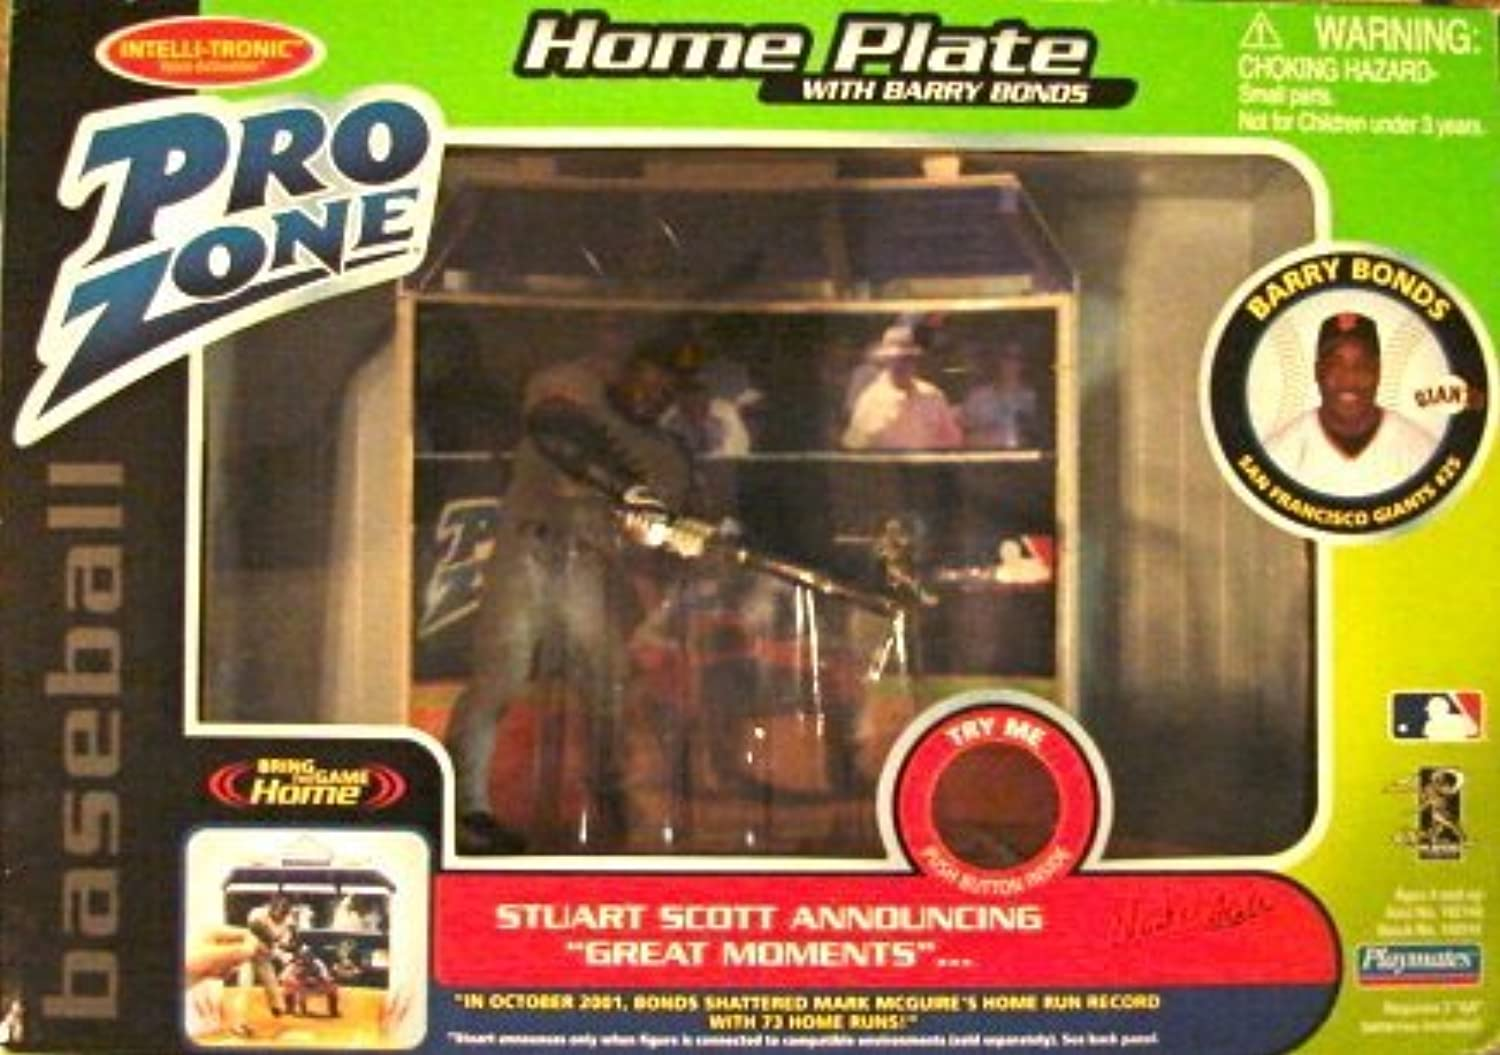 Pro Zone Home Plate with Barry Bonds